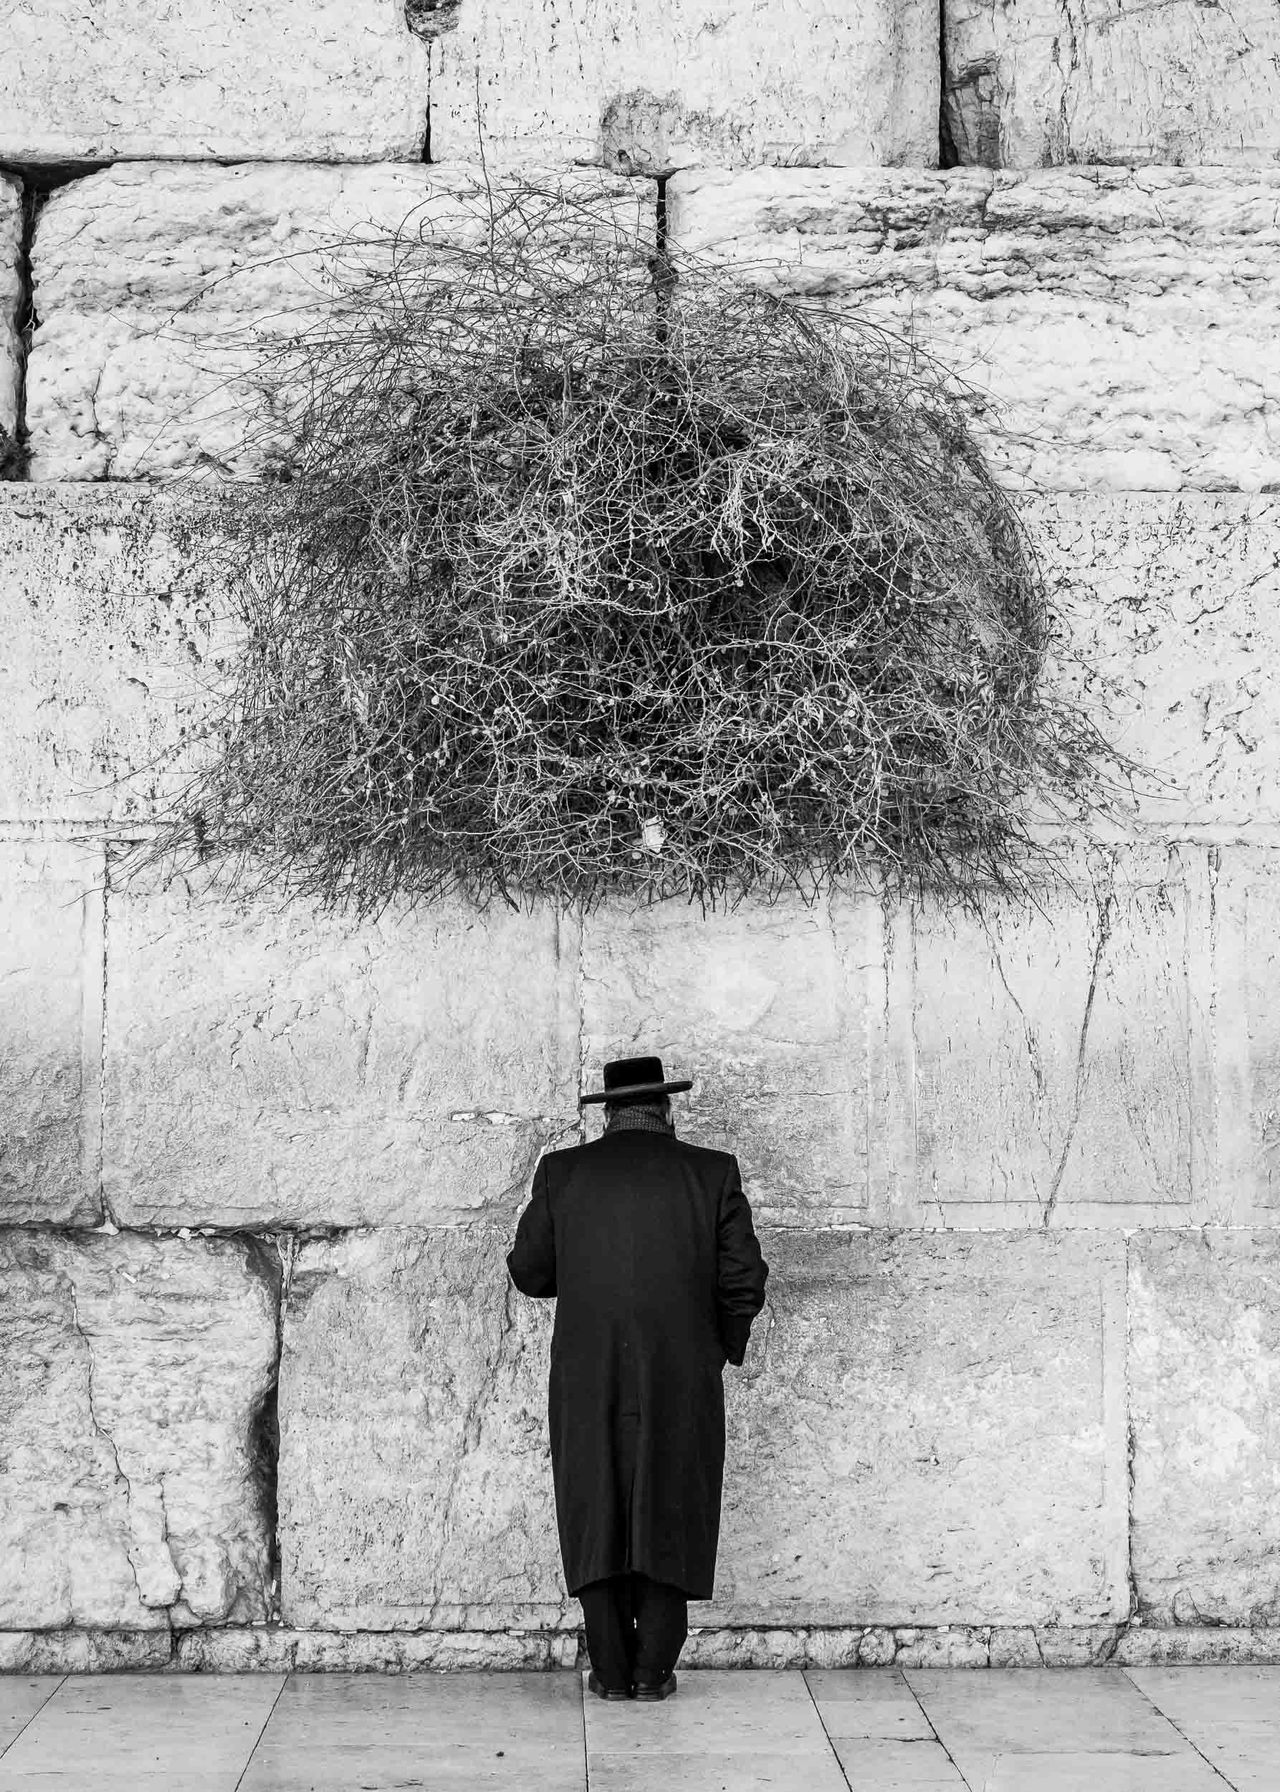 Book your spot to join me on my next scheduled photography tour to Israel. http://www.joubertlootsphotography.com/news/2017/2/1/israel-photography-tour-book-your-spot Blackandwhite EyeEm Best Shots Israel Jerusalem Orthodox Jews Photography Tours Photorist Travel Travel Photography Wailing Wall Tunnels Western Wall